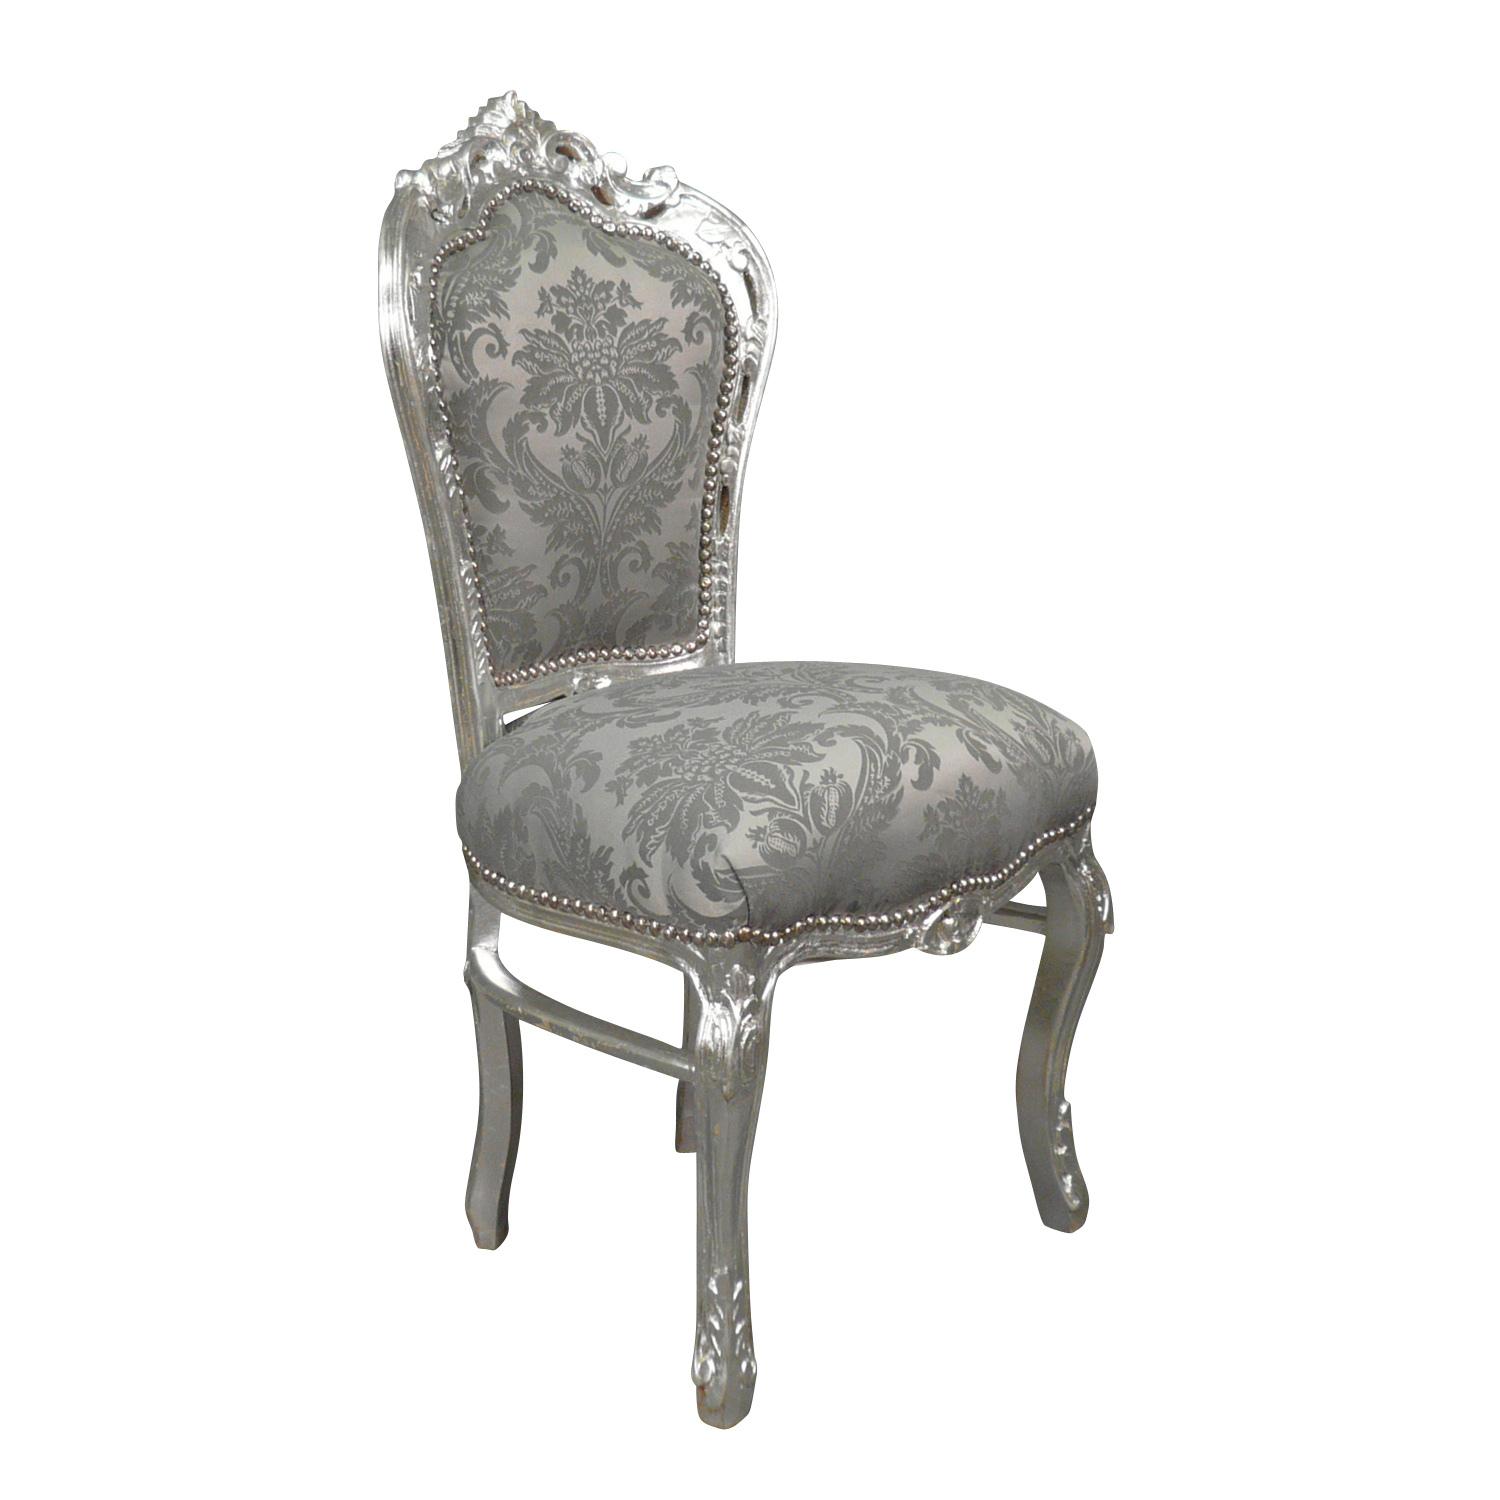 chaise style baroque 28 images chaise baroque de style louis xv chaises baroques chaise. Black Bedroom Furniture Sets. Home Design Ideas